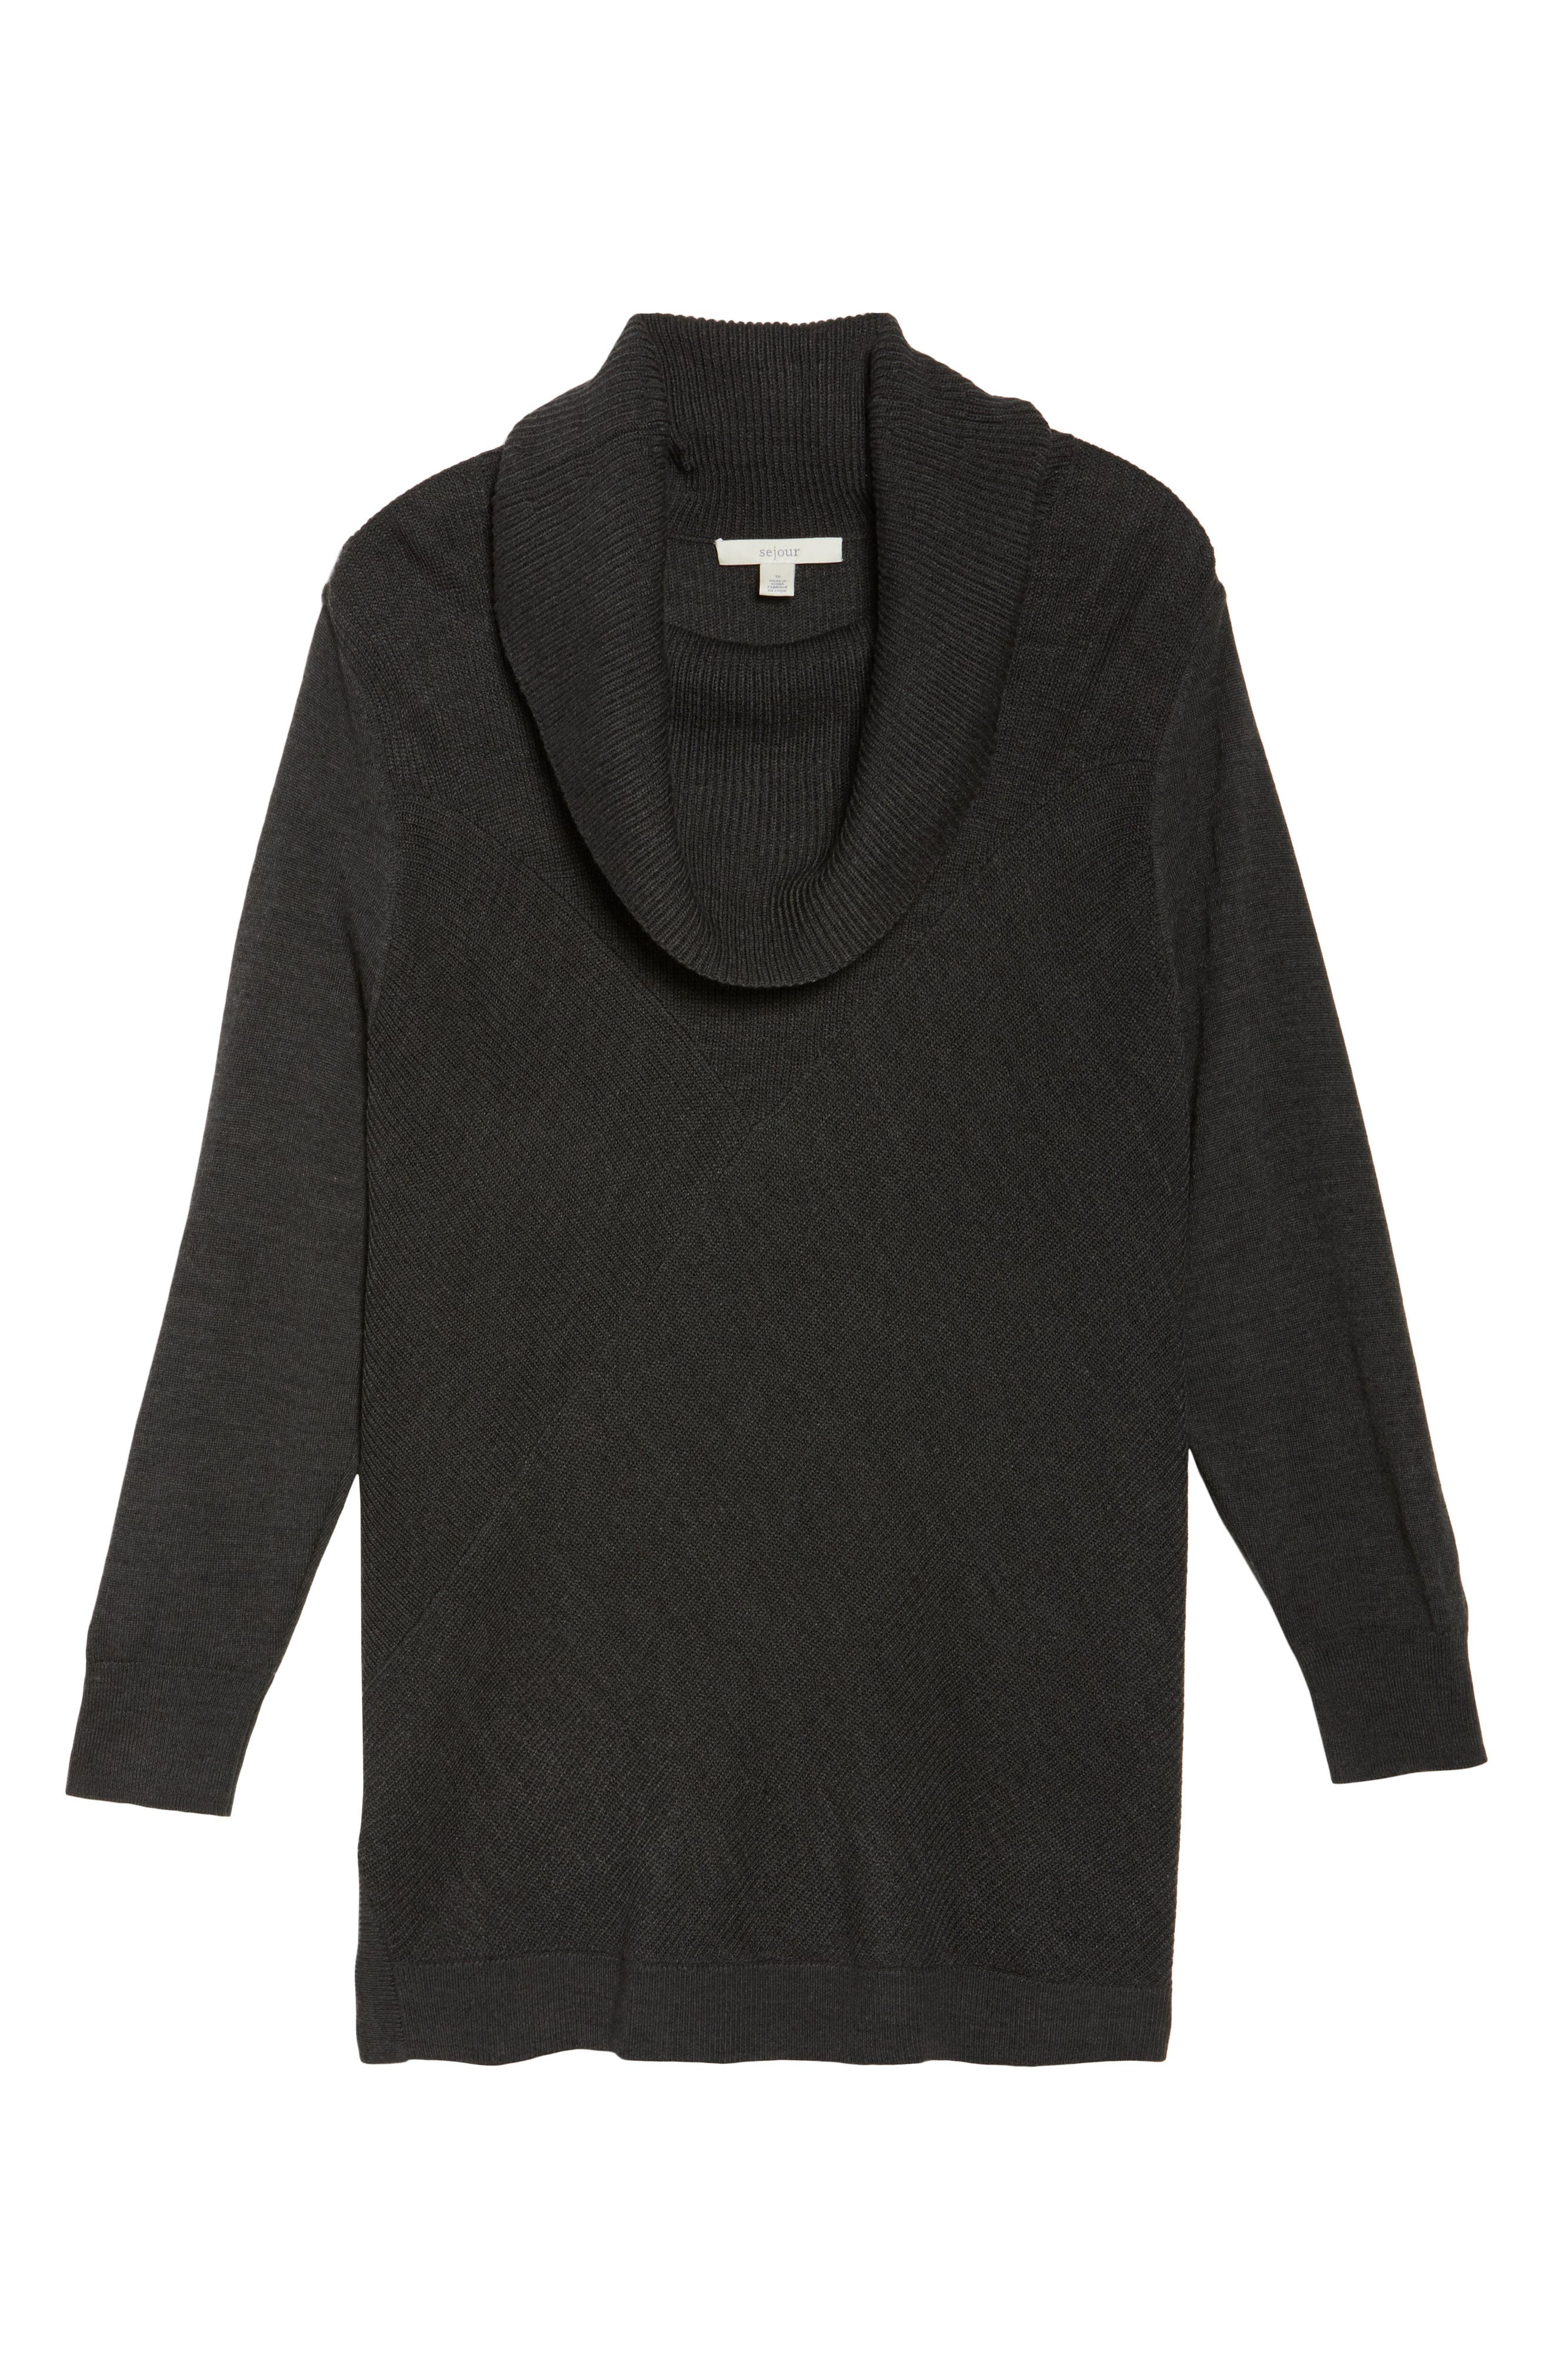 Cowl Neck Ribbed Trim Pullover,                             Alternate thumbnail 6, color,                             Grey Dark Charcoal Heather